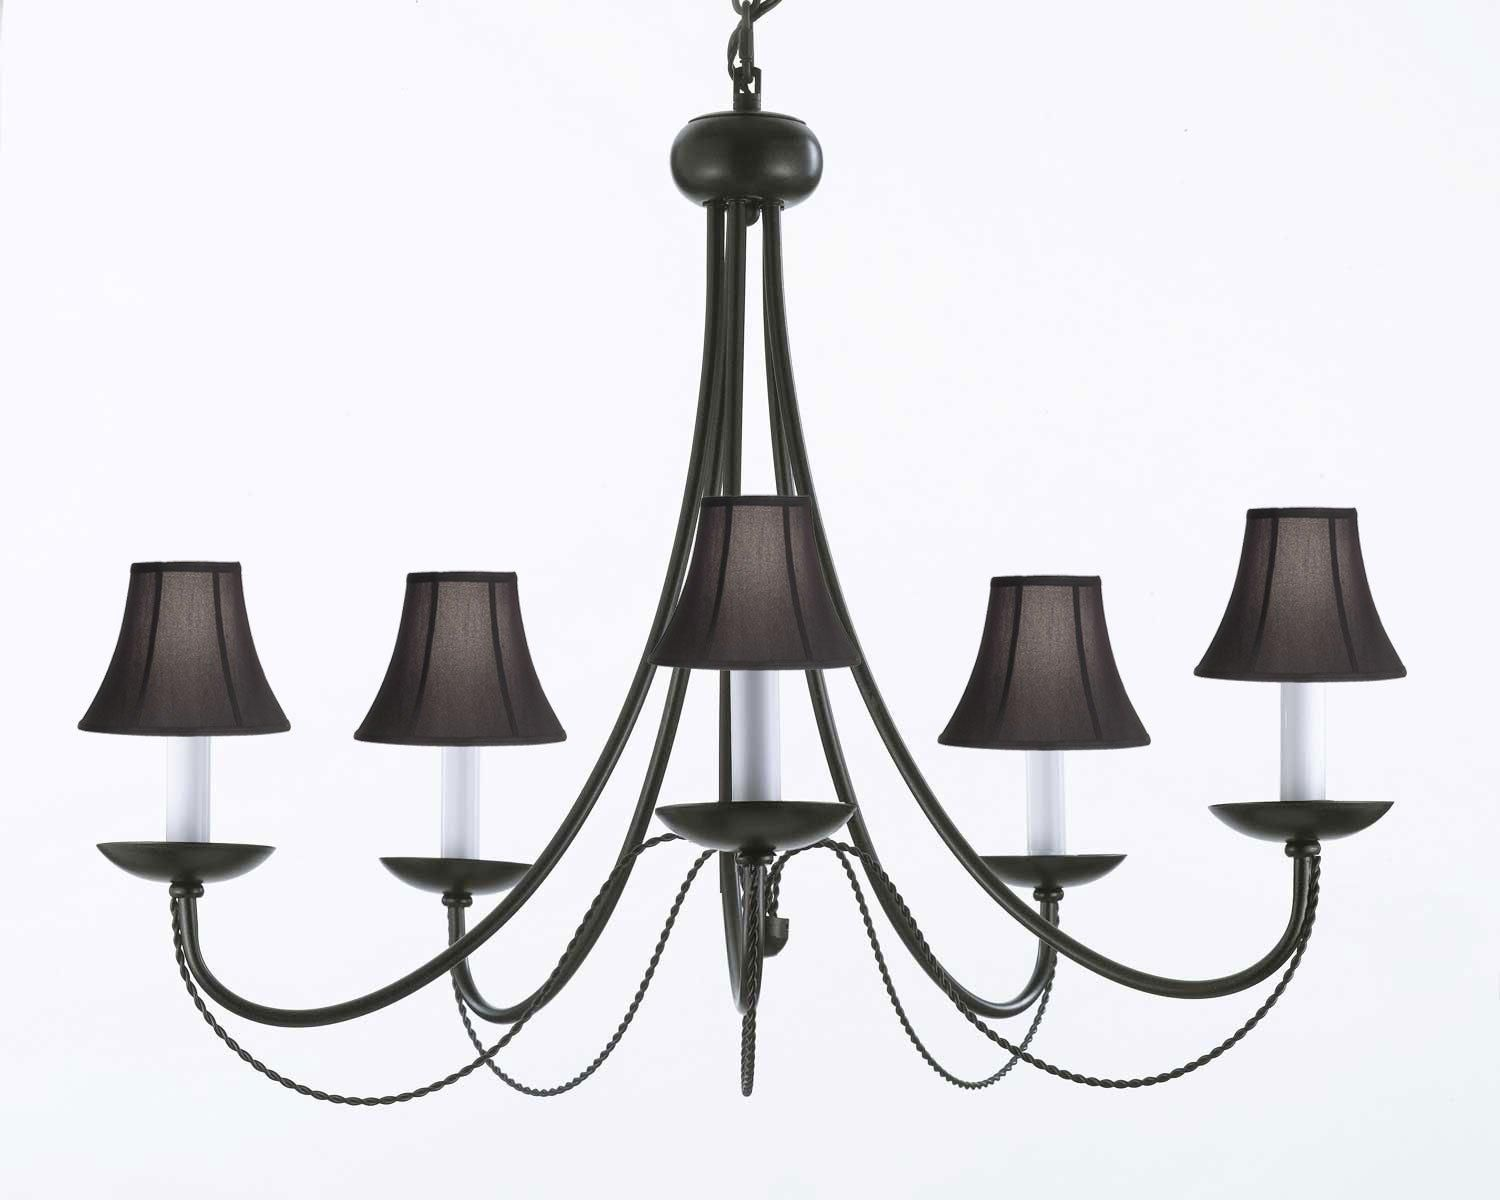 Wrought iron chandelier lighting with black shades h22 x w26 wrought iron chandelier lighting with black shades h22 x w26 aloadofball Image collections